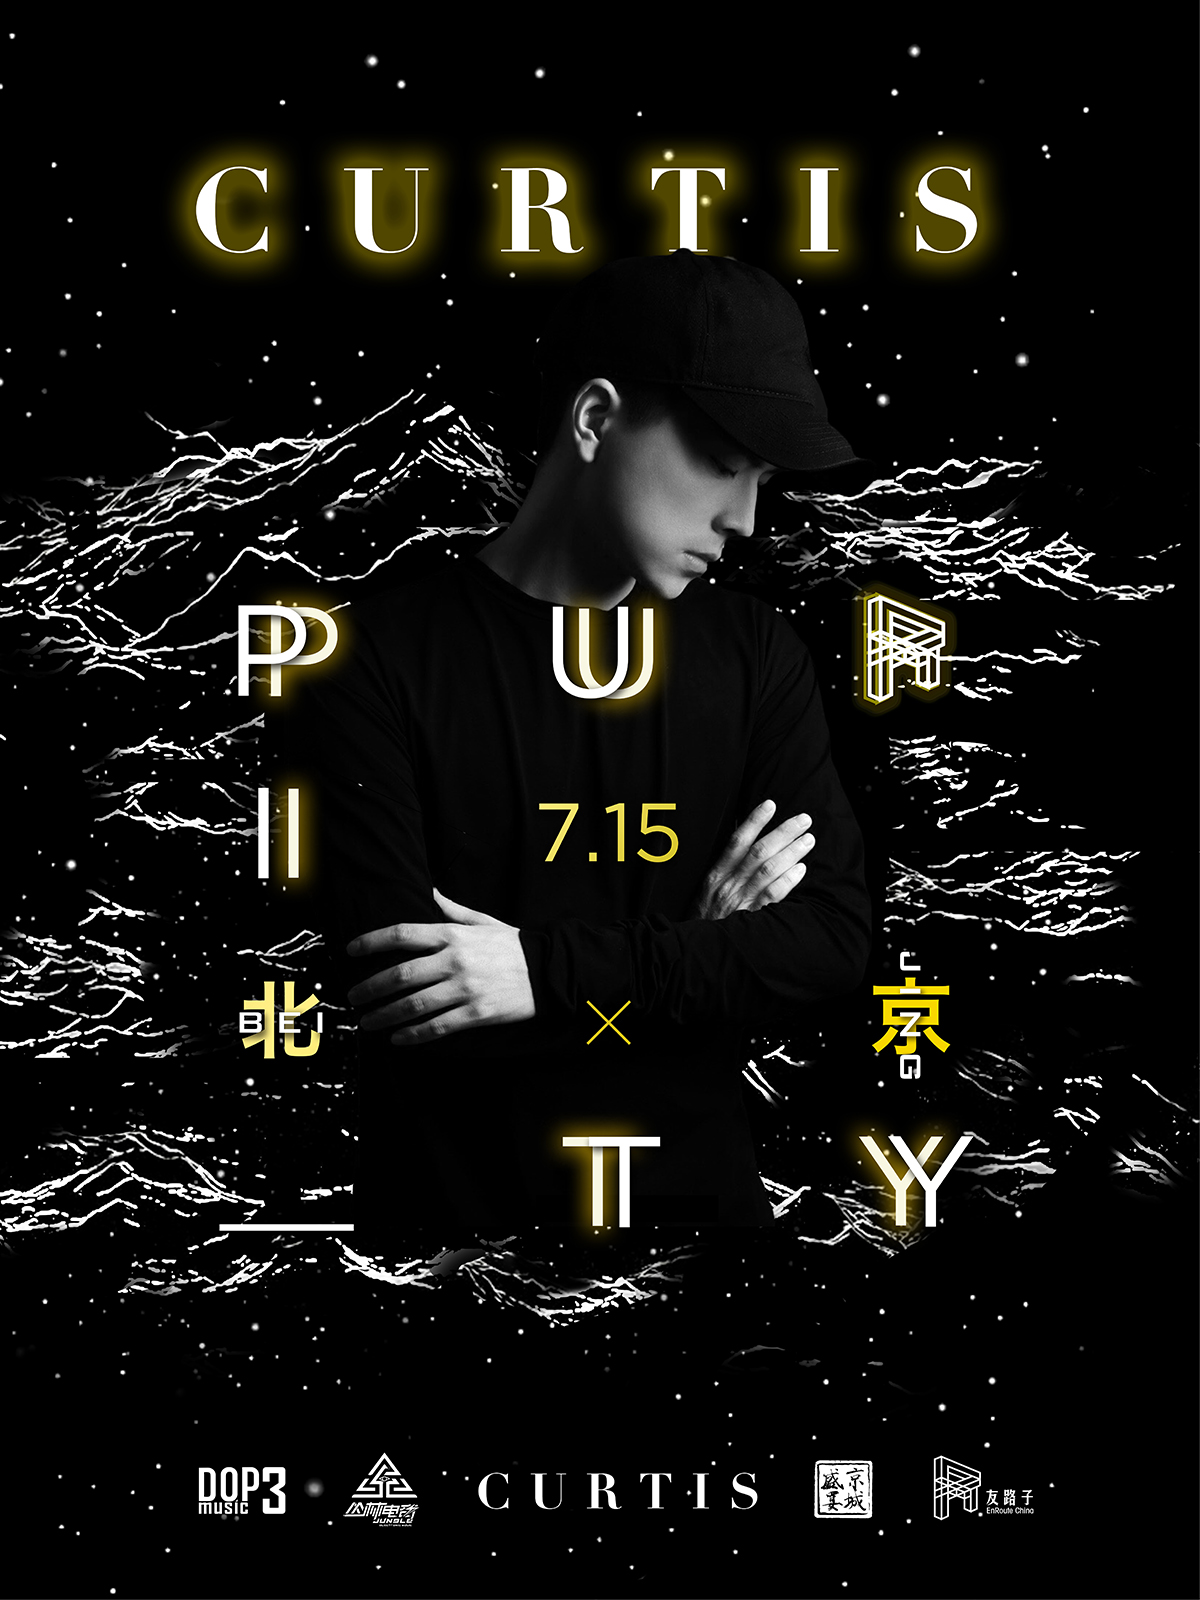 PURITY Rave 2017: Curtis